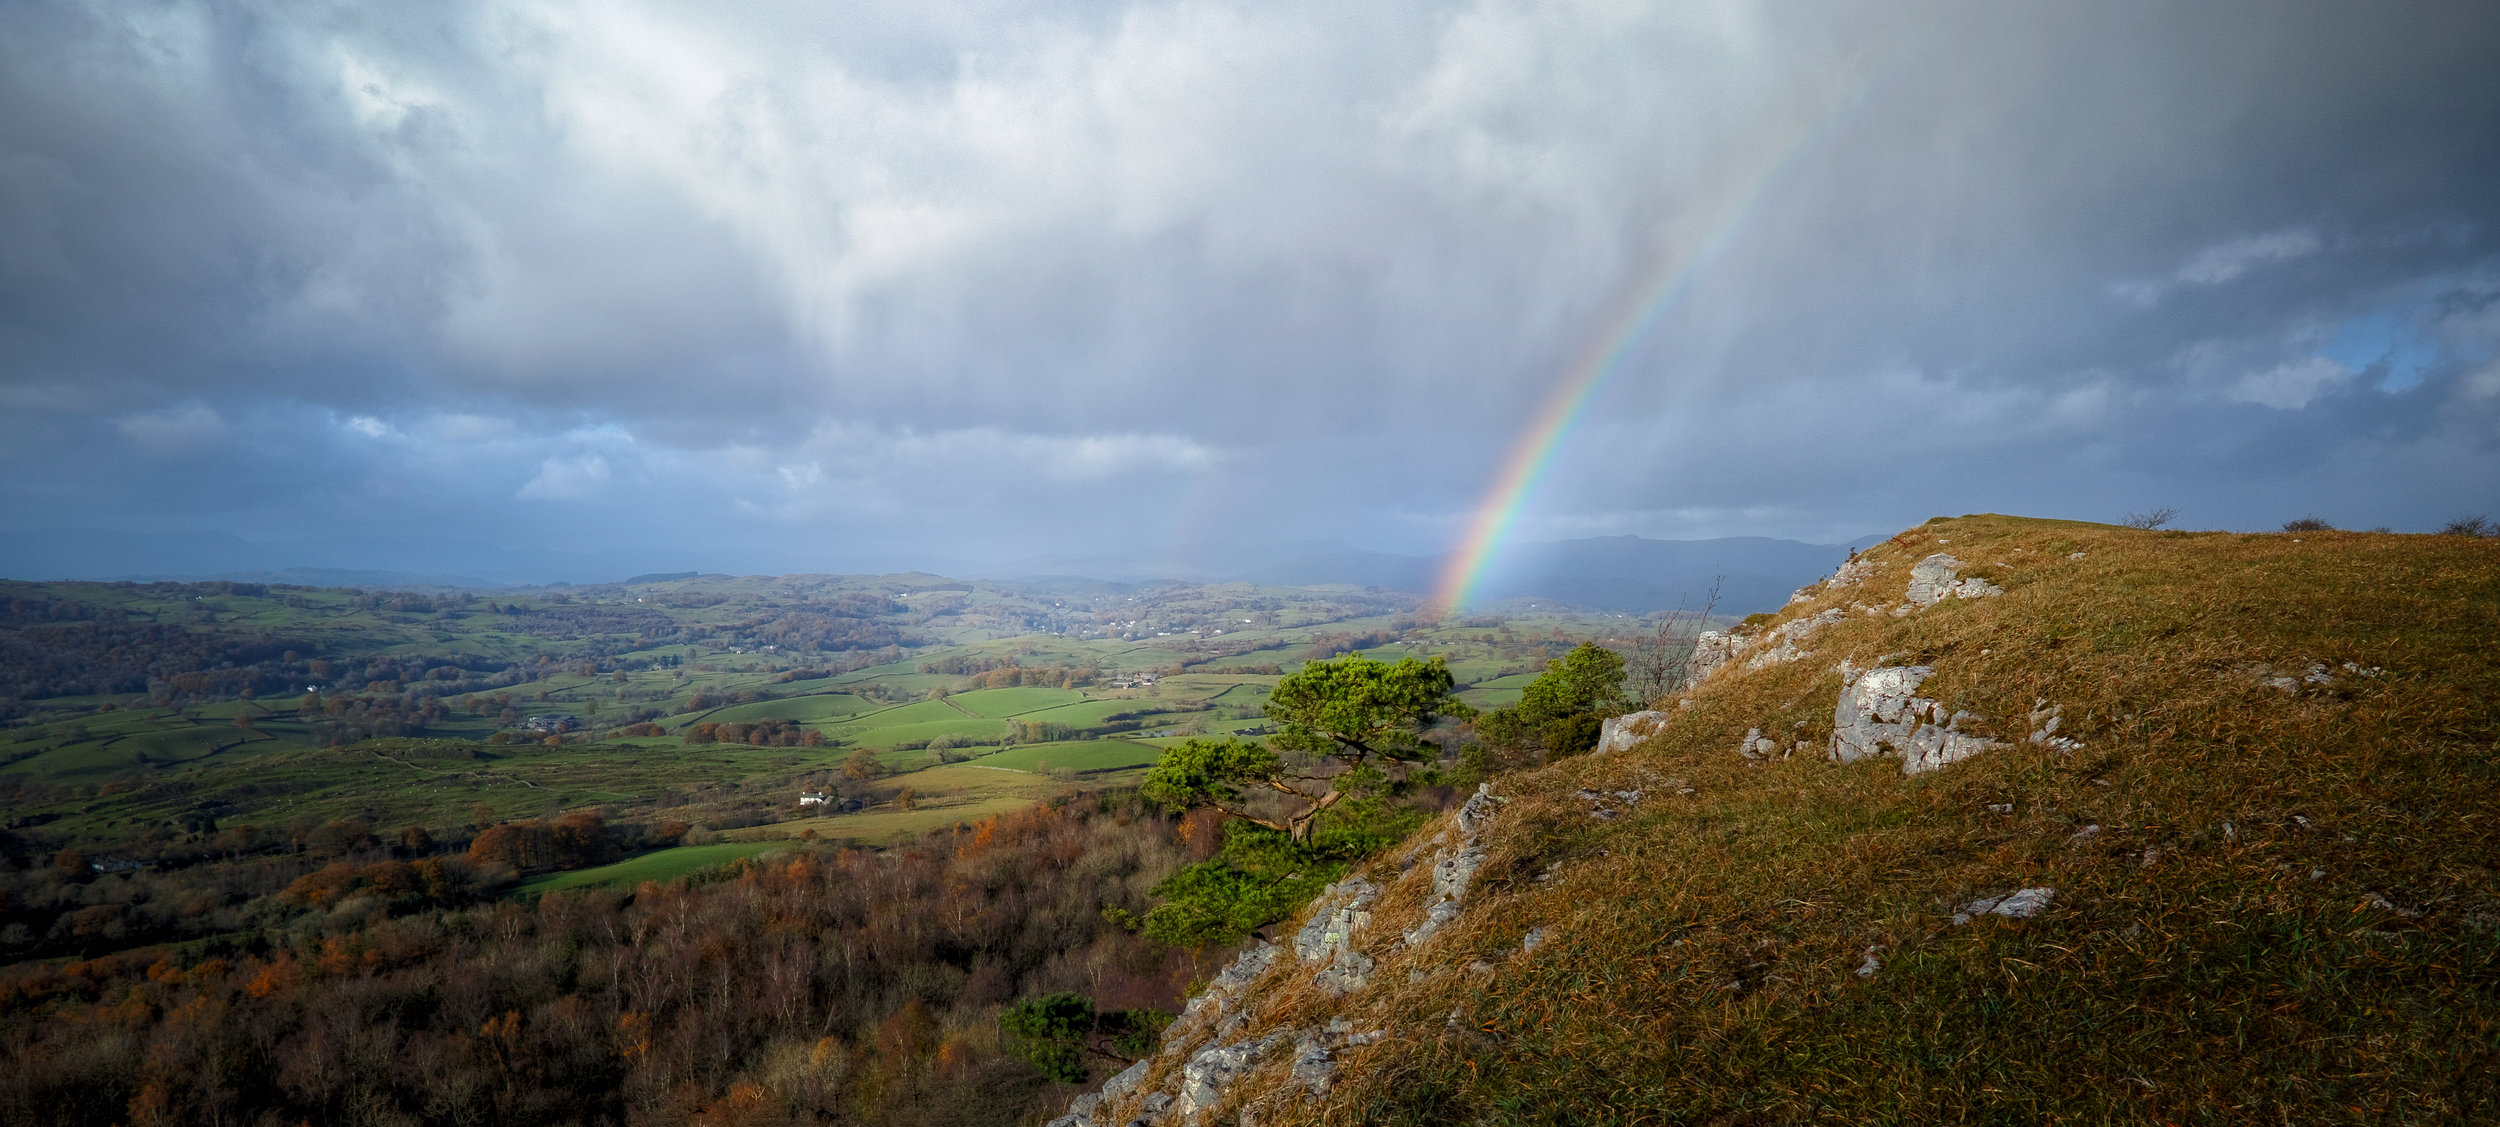 Scout Scar was one of my first experiences of Cumbria, when Lisabet introduced me to the place bright and early one morning. Read the rest of this blog post here  https://www.iancylkowski.com/blog/2019/6/6/the-rainbow-above-the-cliff